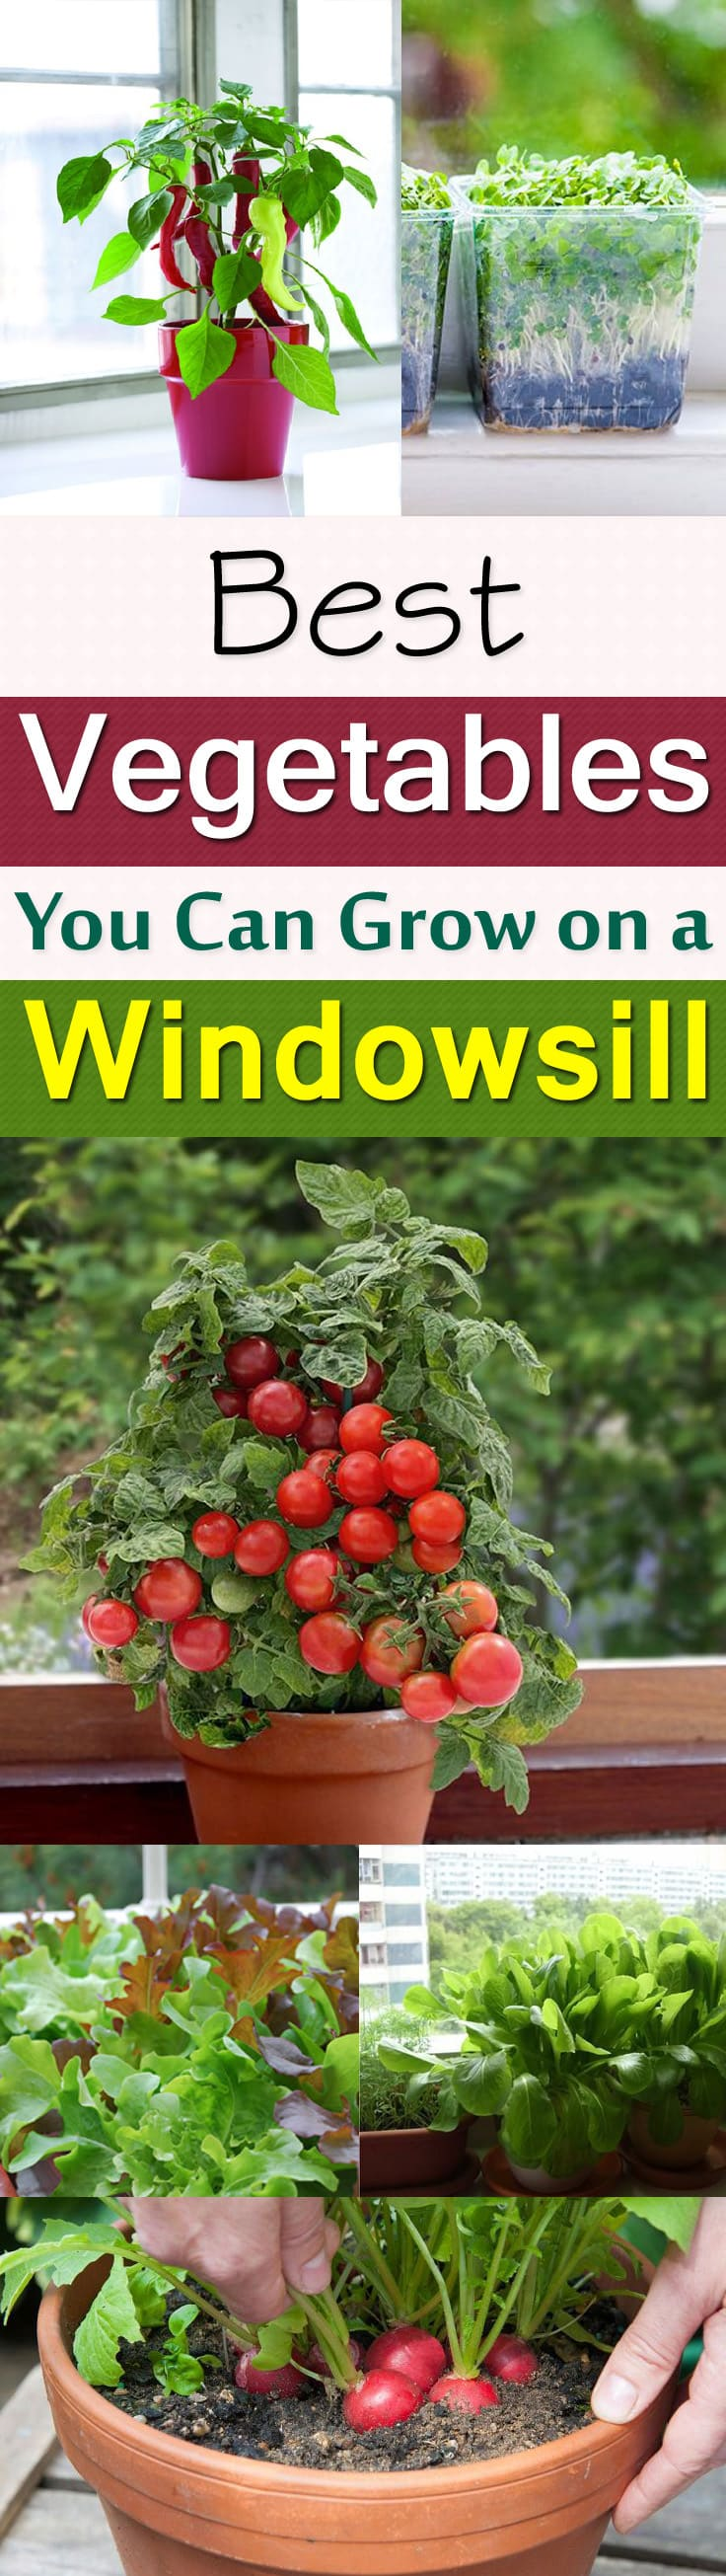 windowsill vegetable gardening 11 best vegetables to grow on